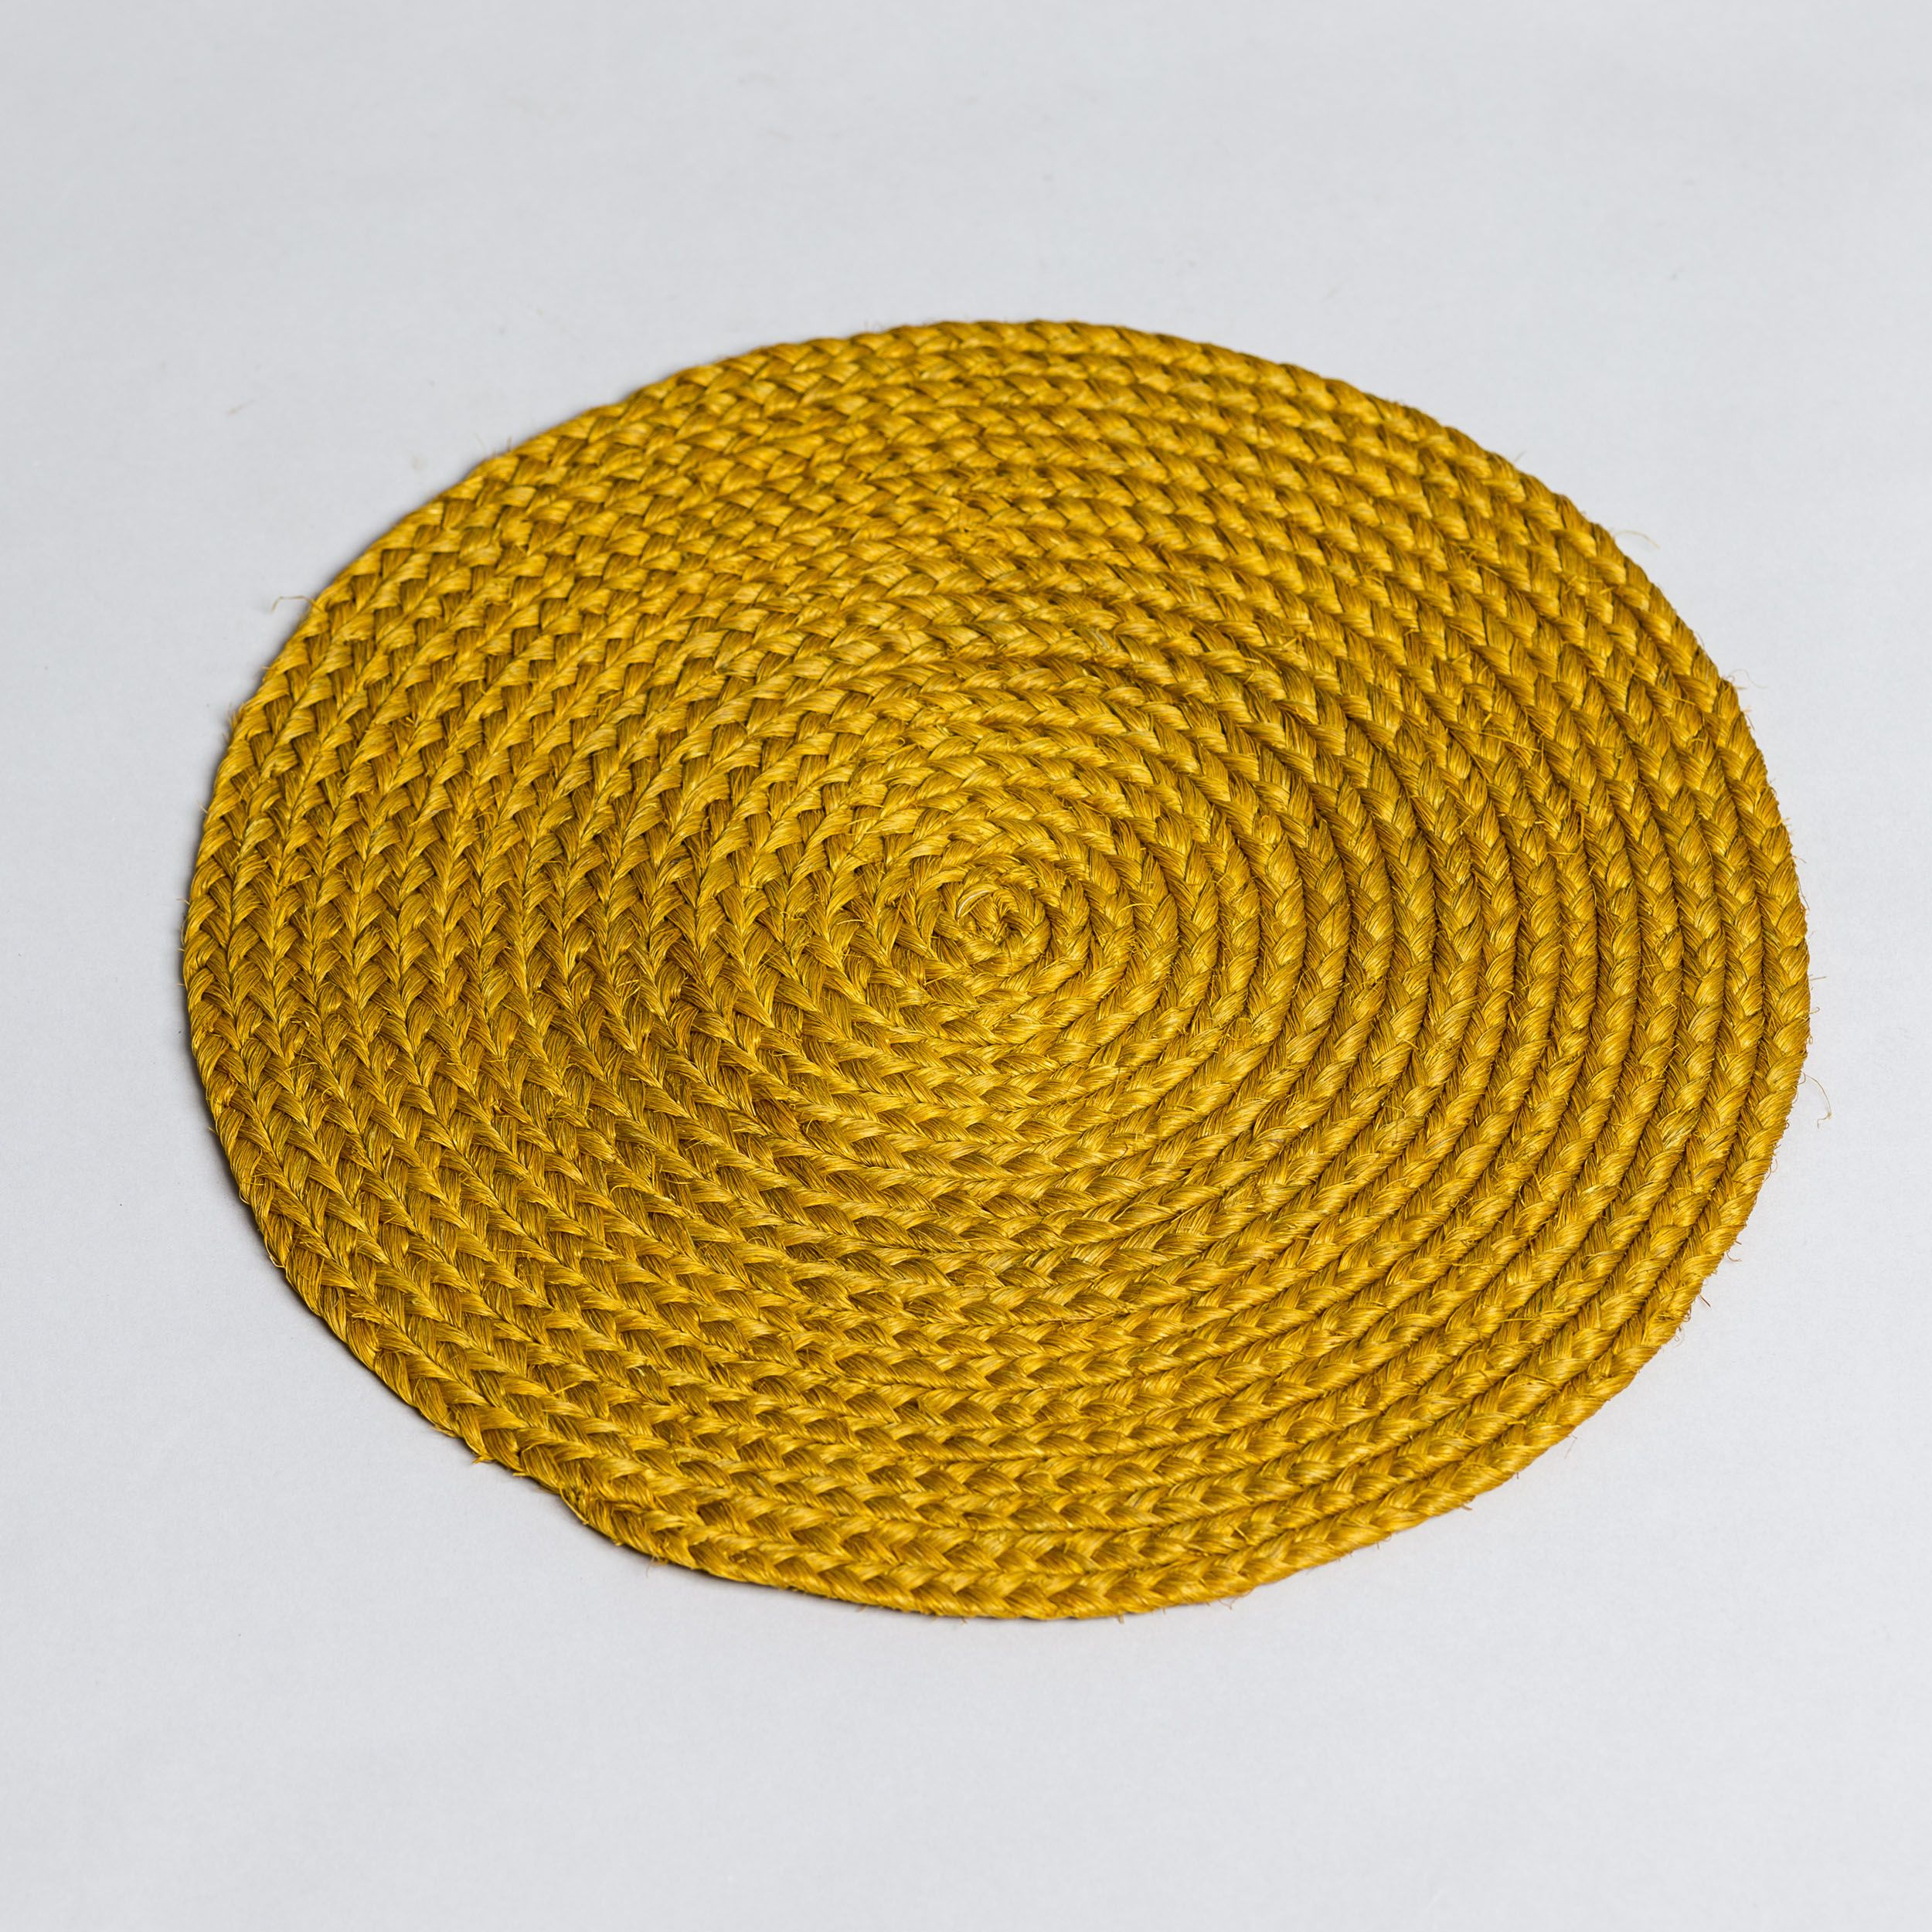 Our Sisal table mats are hand-made in South India and are great for your dining table or under vases and other decorative items in your living space.